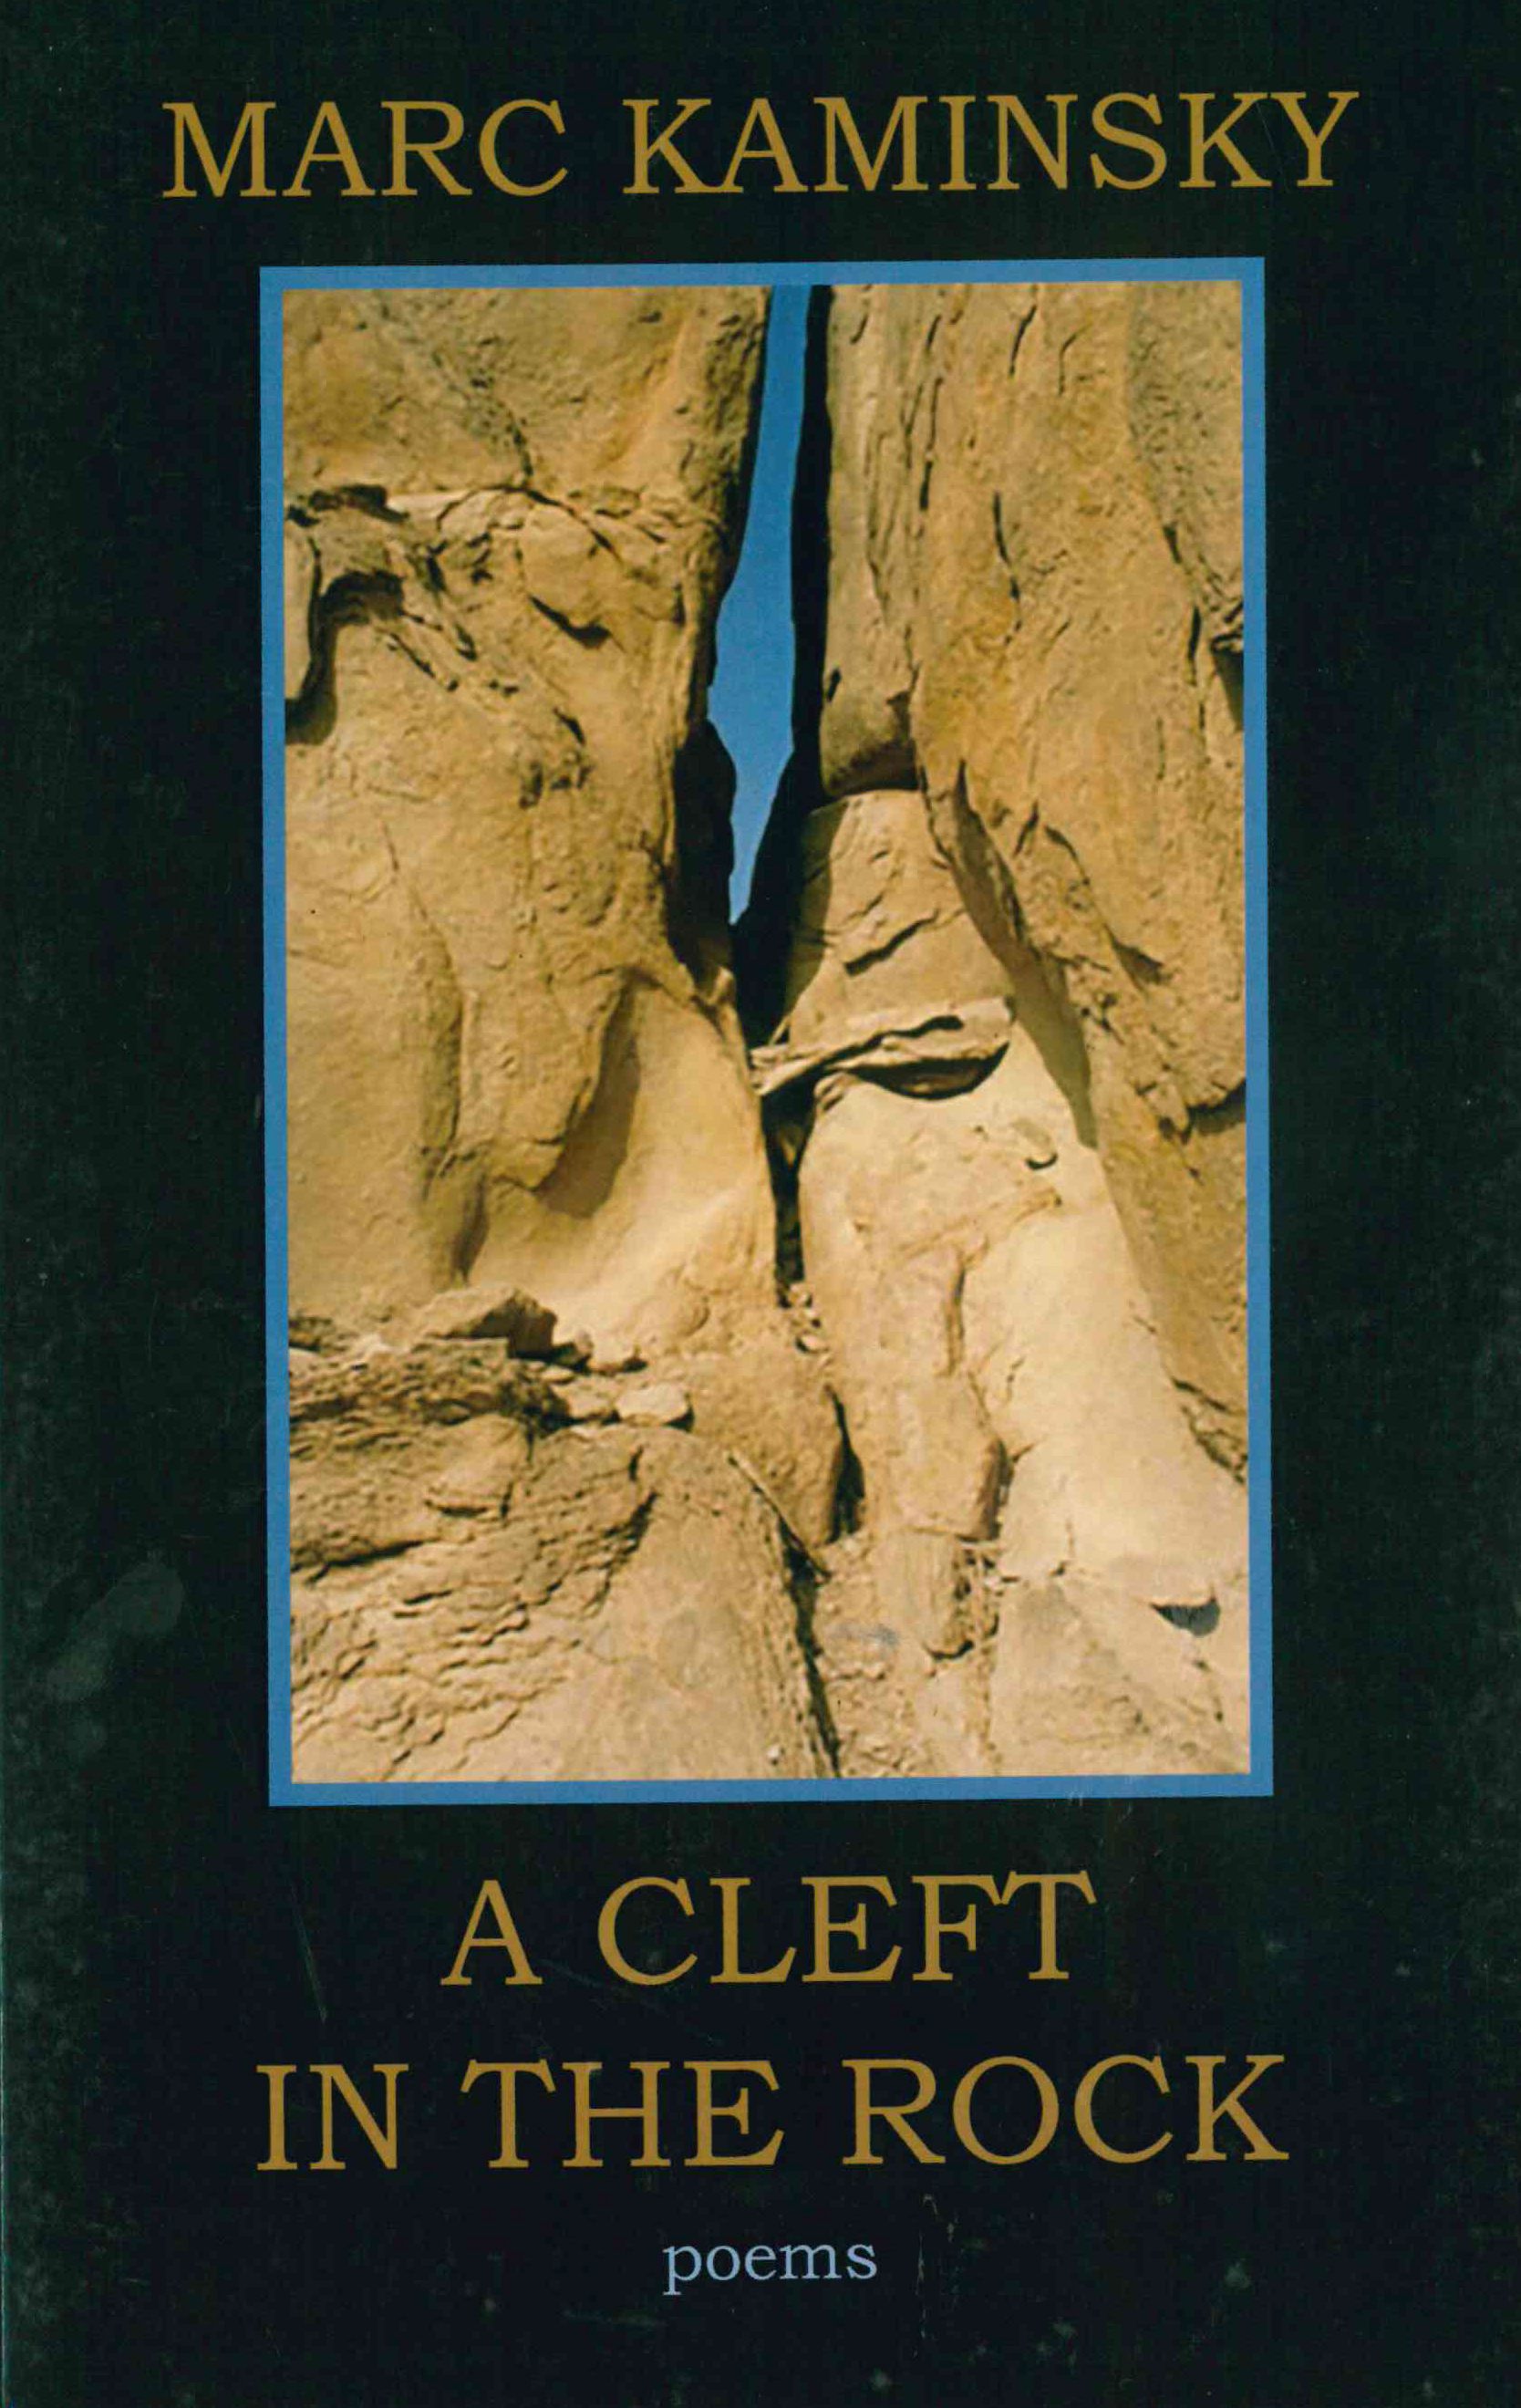 A Cleft in the Rock